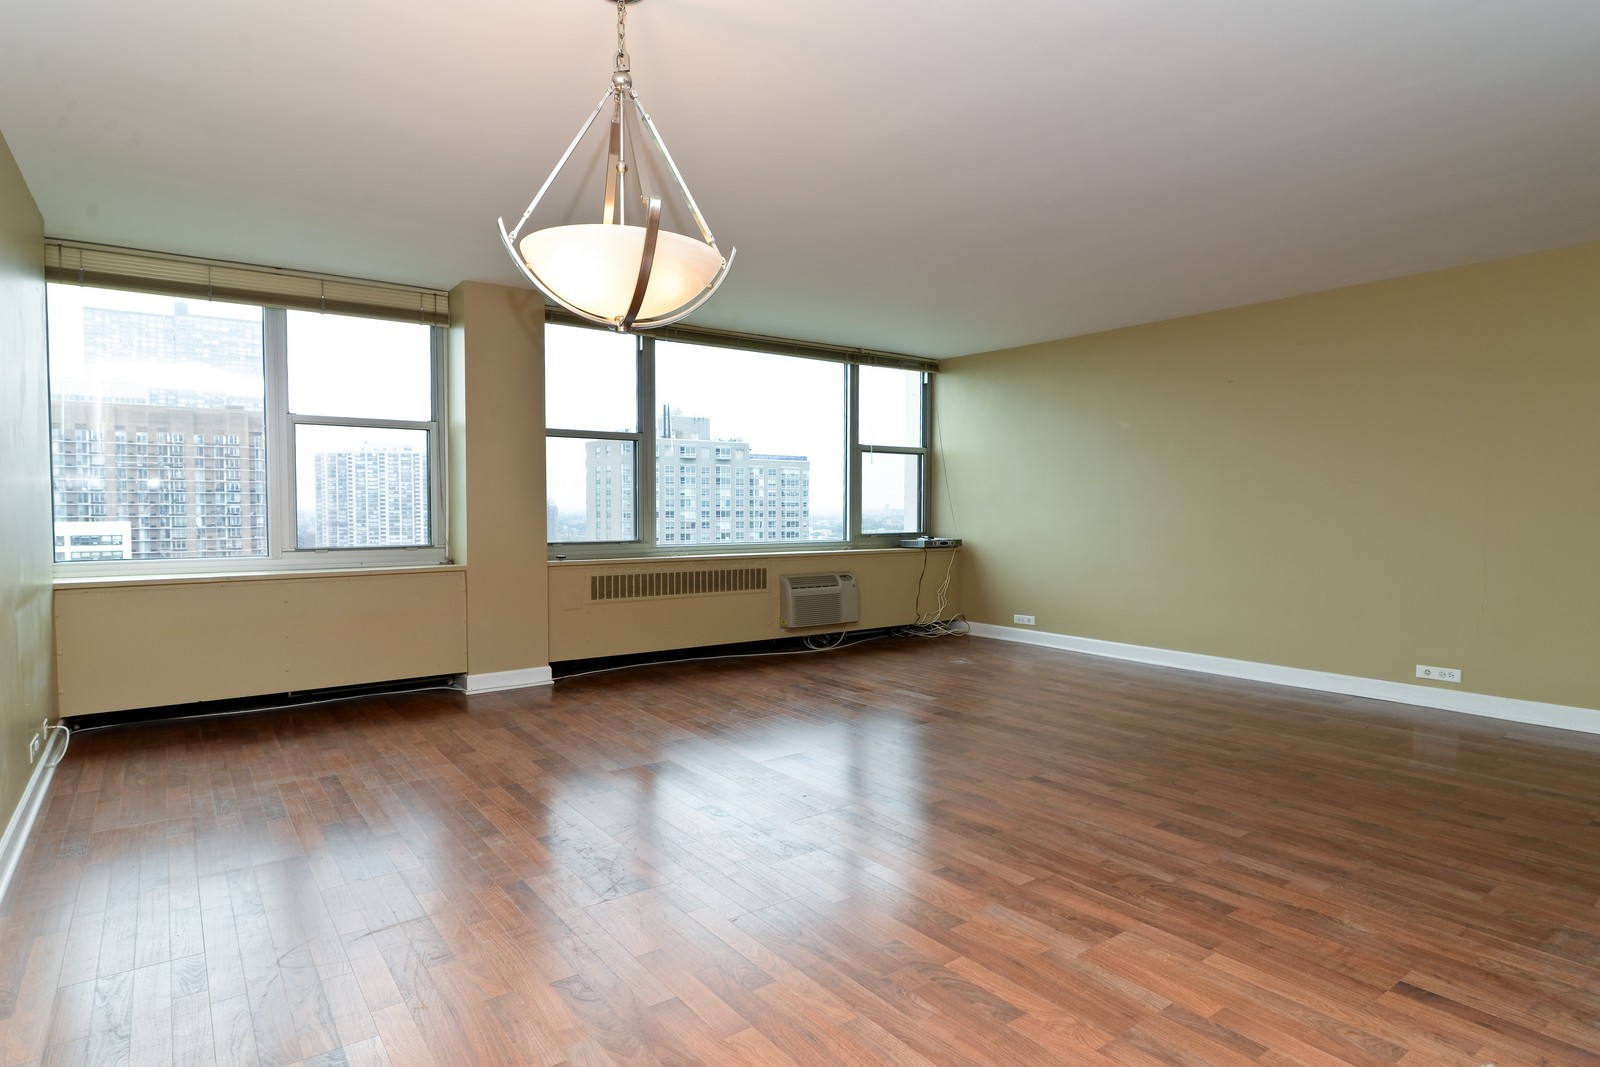 Real Estate Photography - 4250 N Marine Dr, Unit 1806S, Chicago, IL, 60613 - Living Room